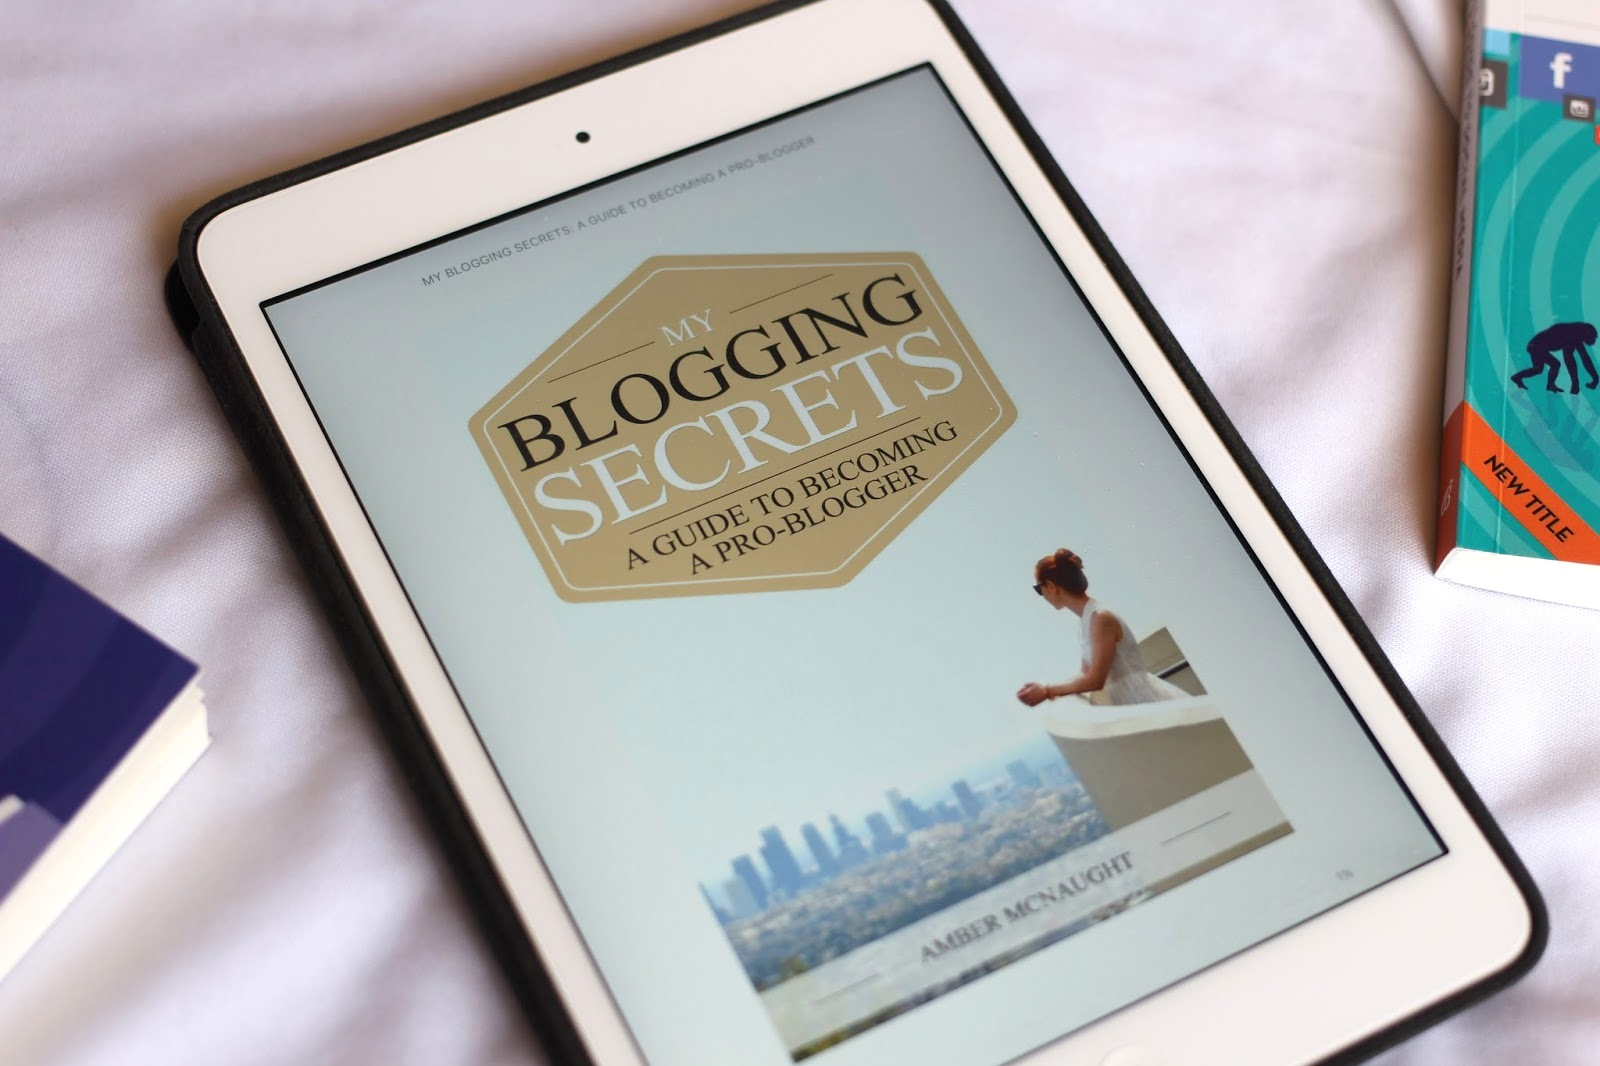 MY BLOGGING SECRETS AMBER MCNAUGHT